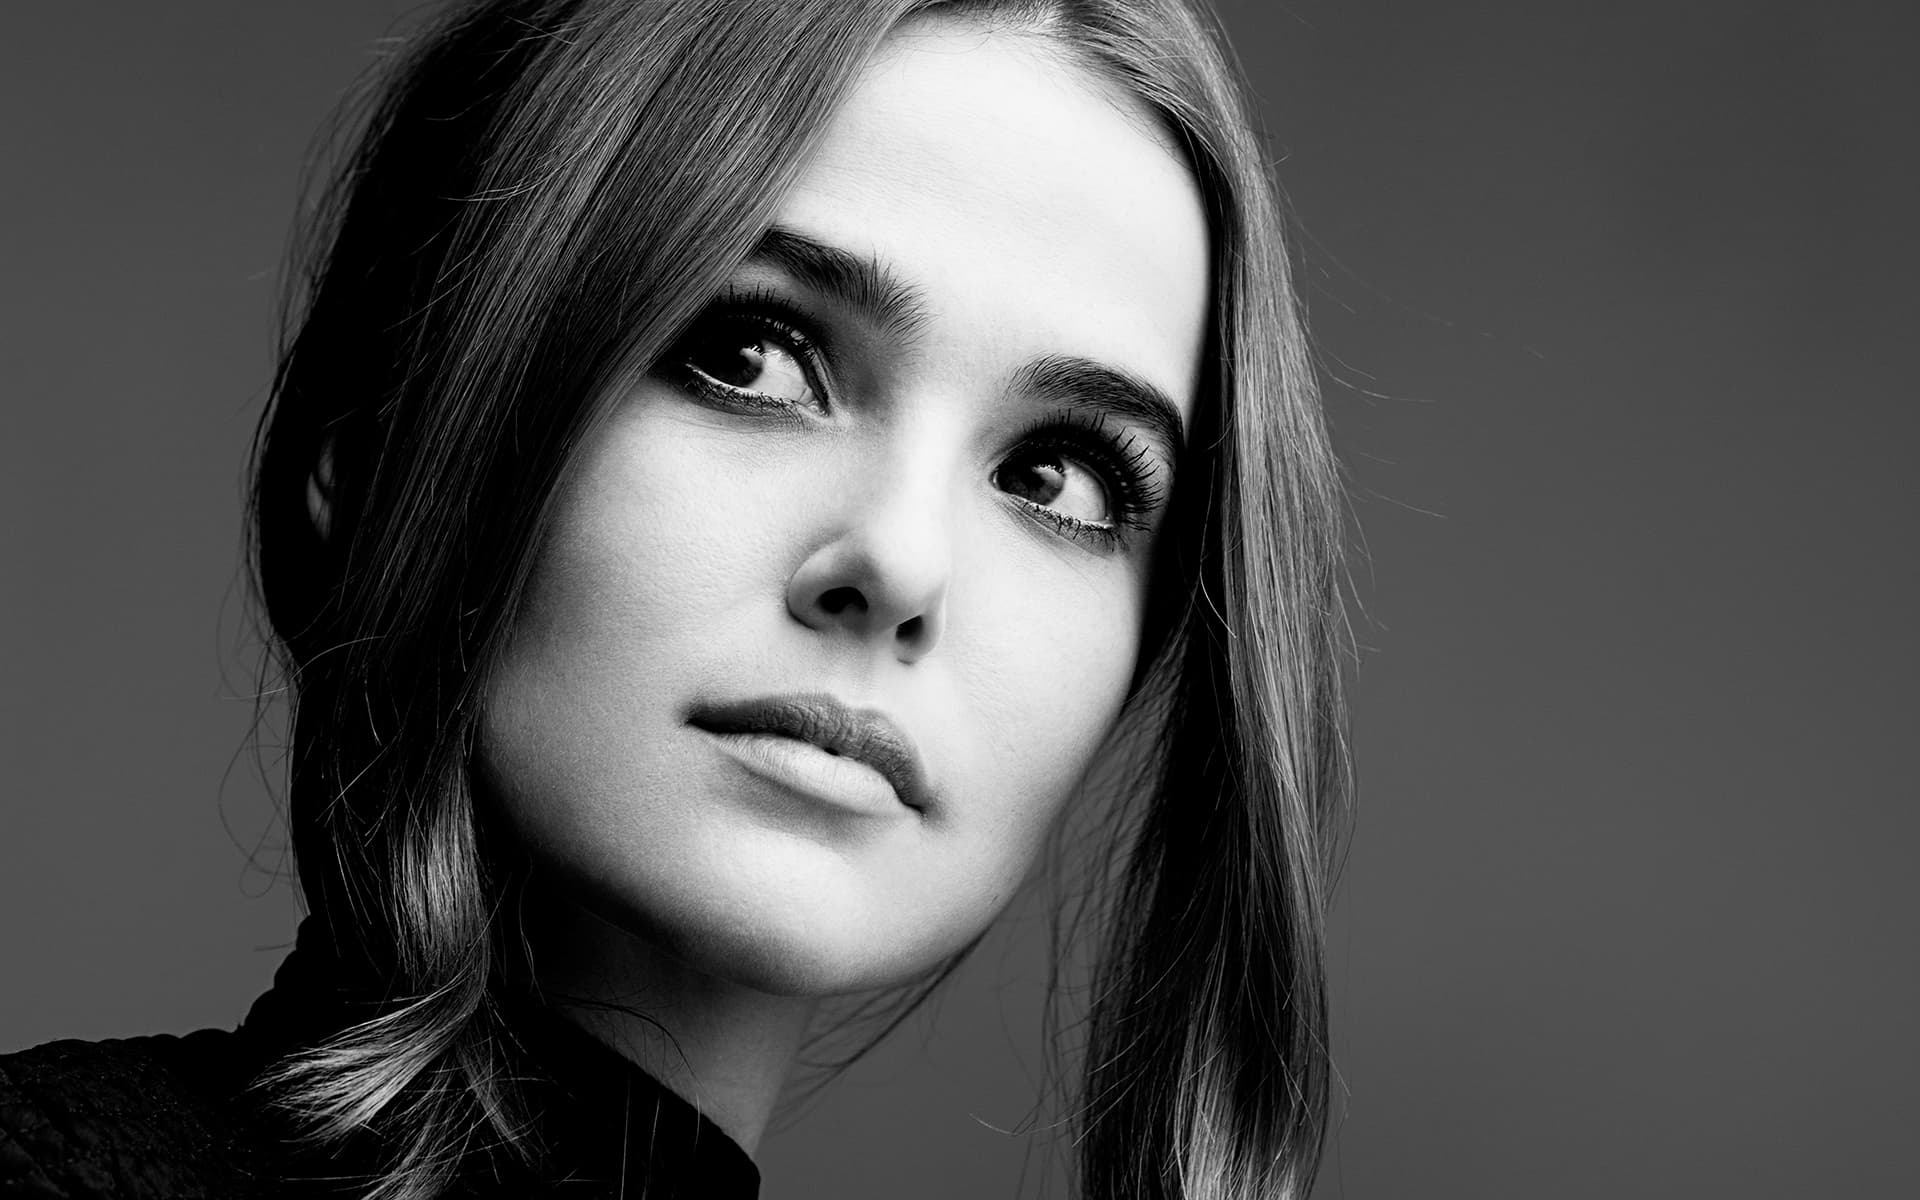 Beautiful Car Wallpaper Background 14 Zoey Deutch Wallpapers High Quality Resolution Download